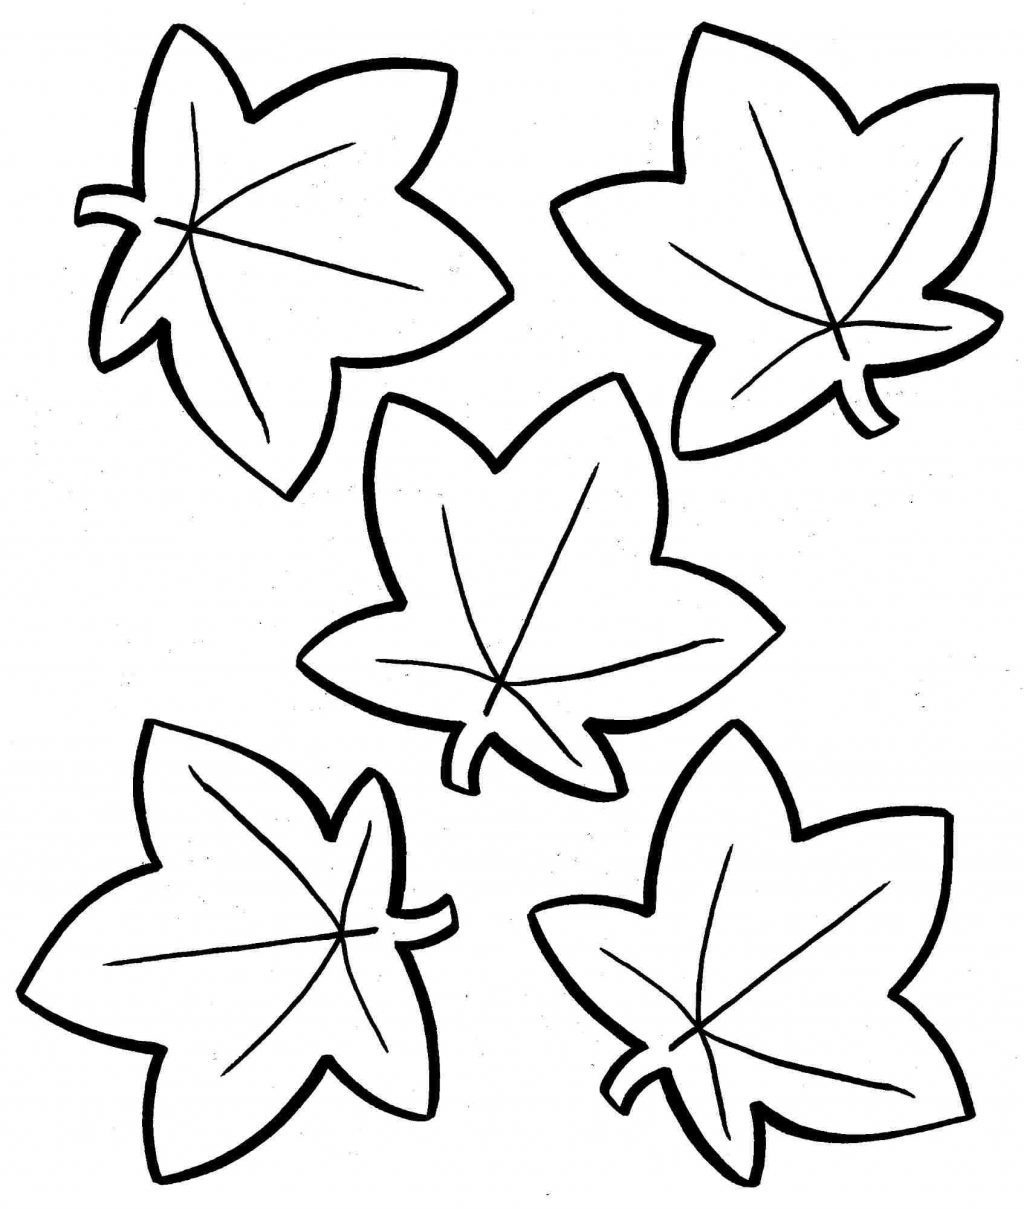 Coloring Ideas : Coloring Pages Fall Leavesable Autumn Page Az - Free Printable Leaf Coloring Pages